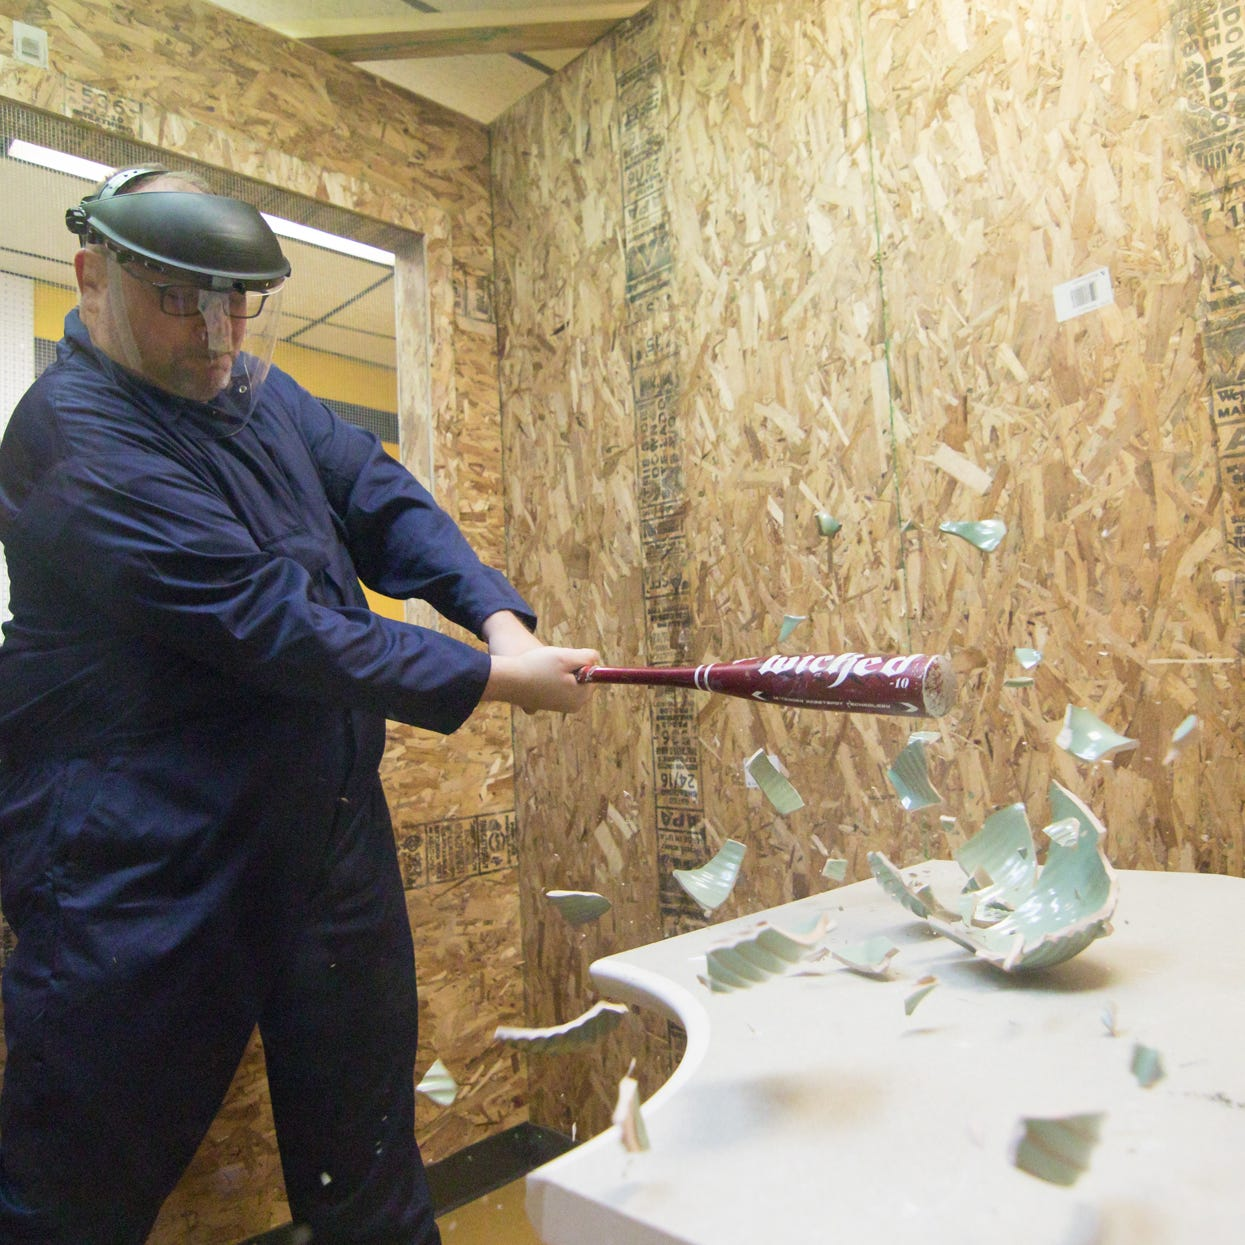 Destruction Depot rage room to nearly triple in size